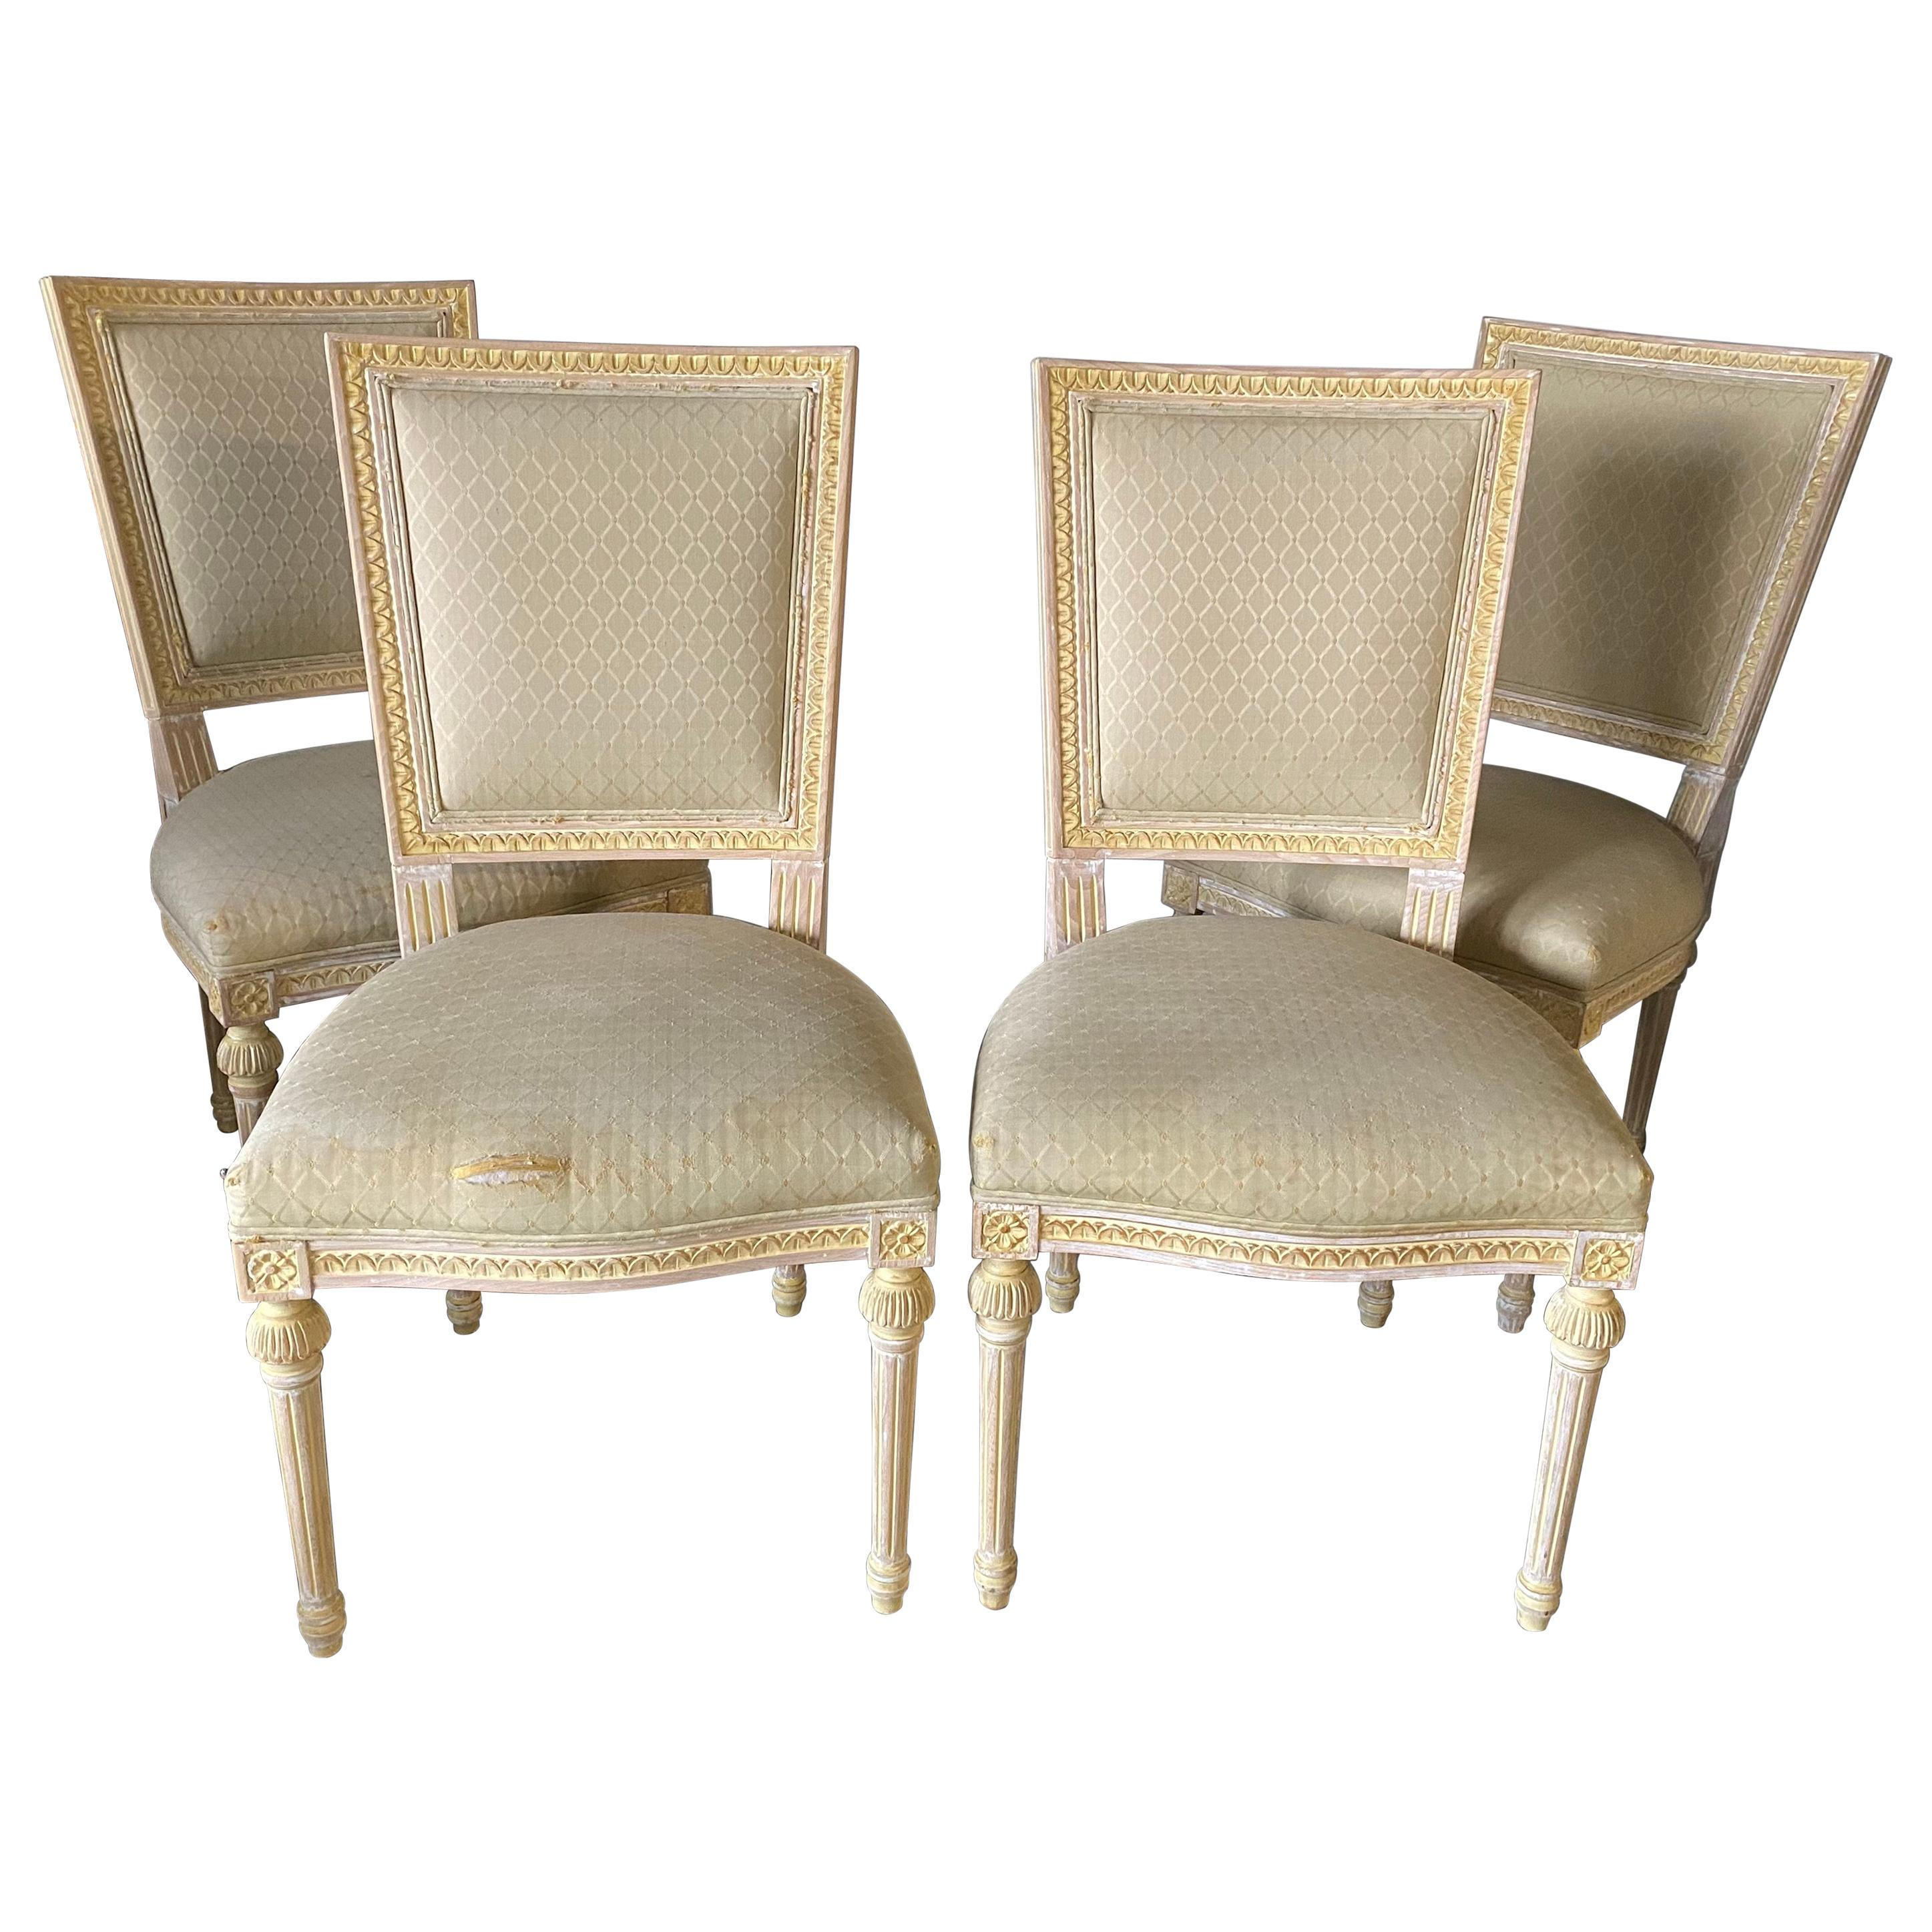 Set of 4 Louis XVI Style Dining Chairs